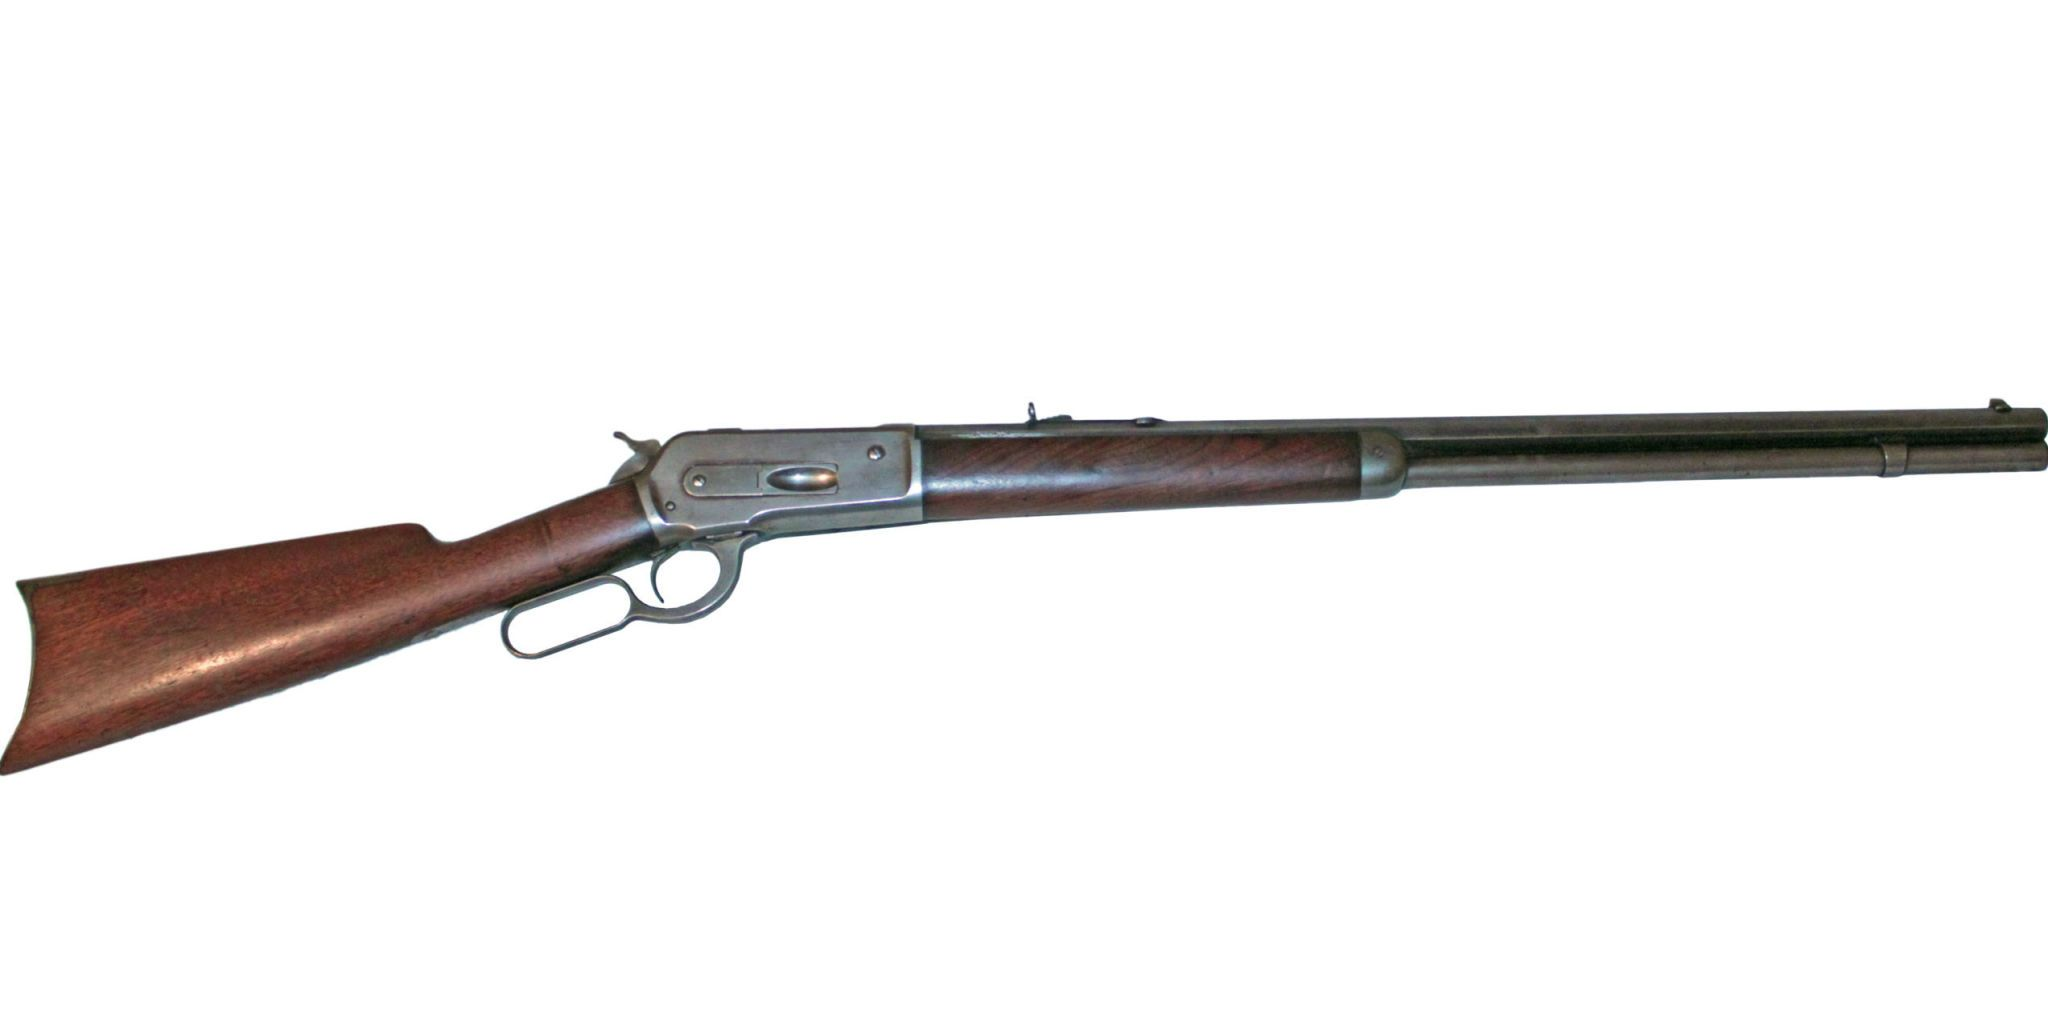 The Story of the Legendary Winchester Rifle